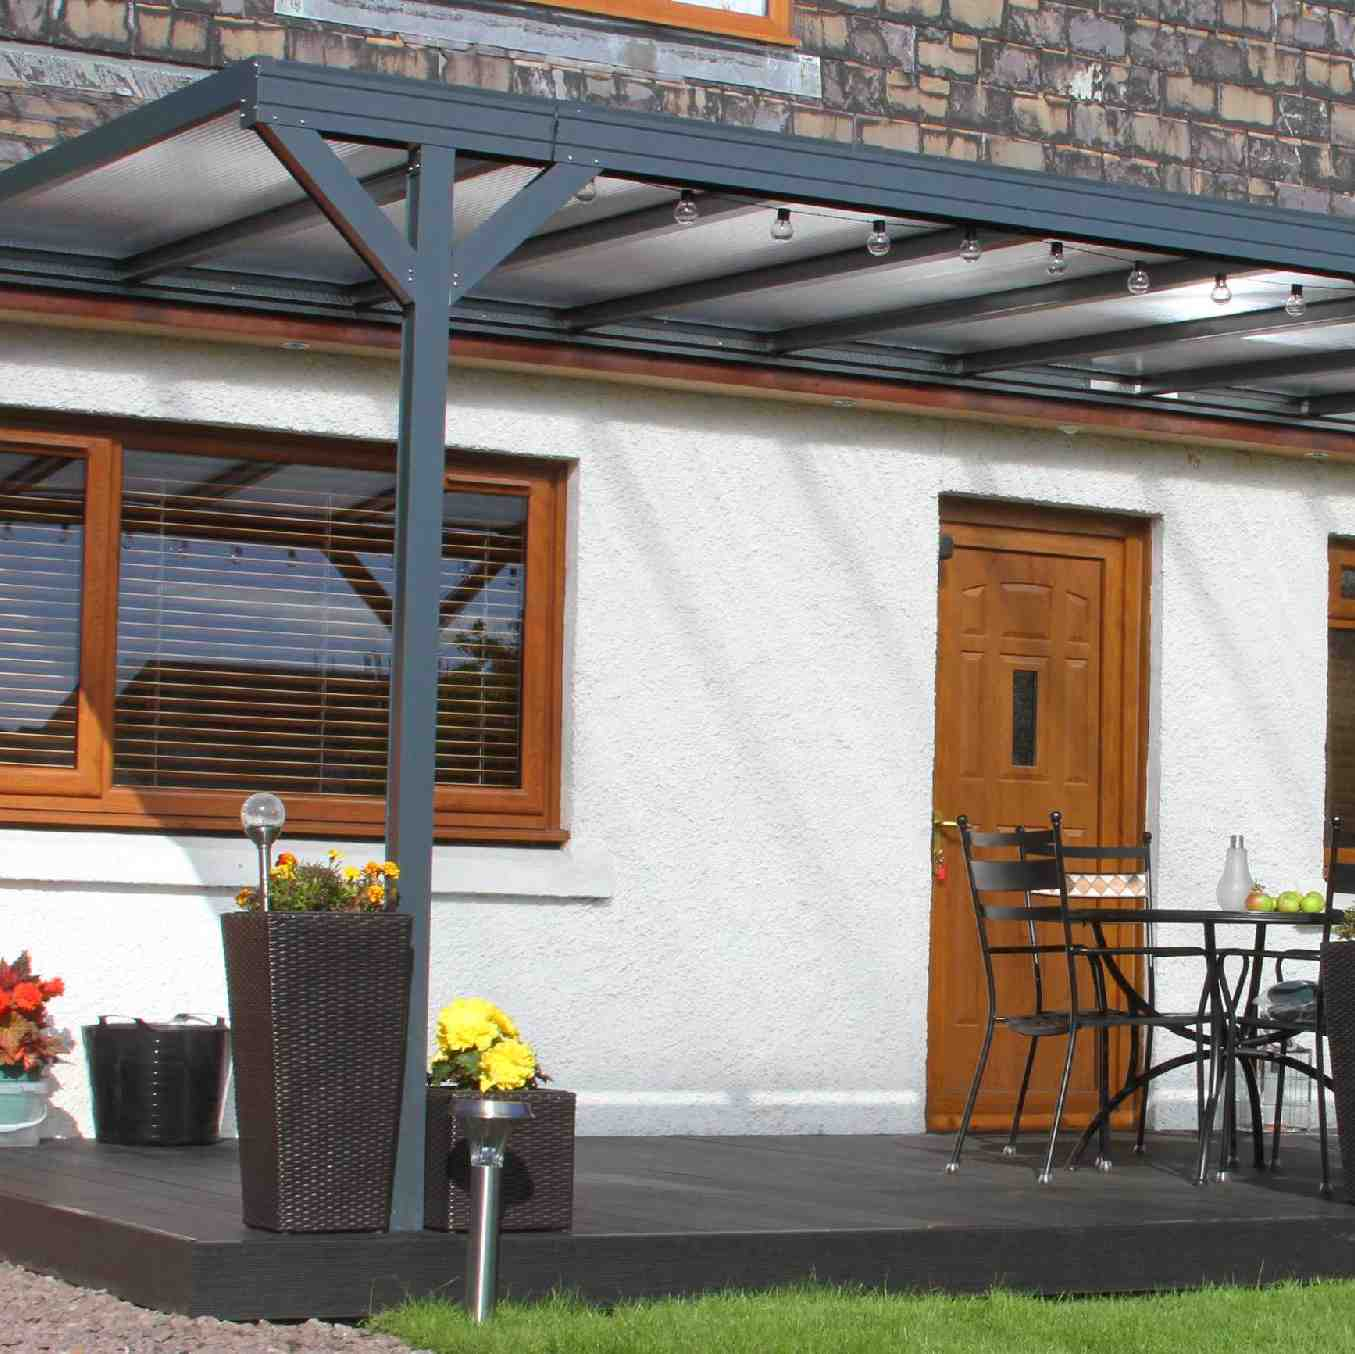 Omega Verandah, Anthracite Grey, 16mm Polycarbonate Glazing - 9.5m (W) x 2.5m (P), (5) Supporting Posts